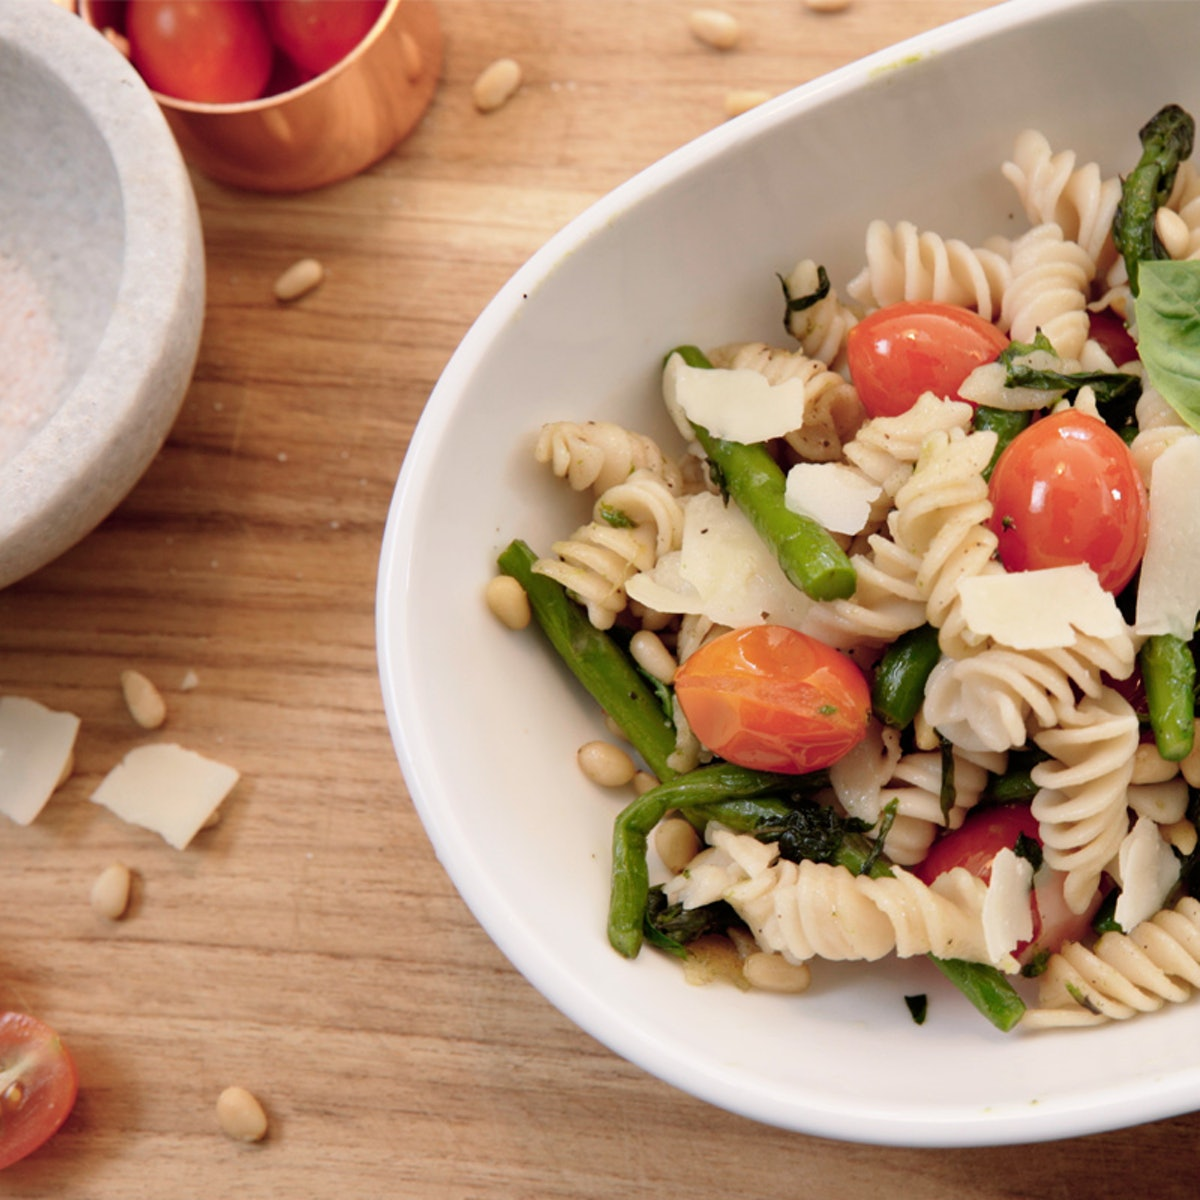 3 Quick And Healthy Dinner Recipes From Trader Joe's